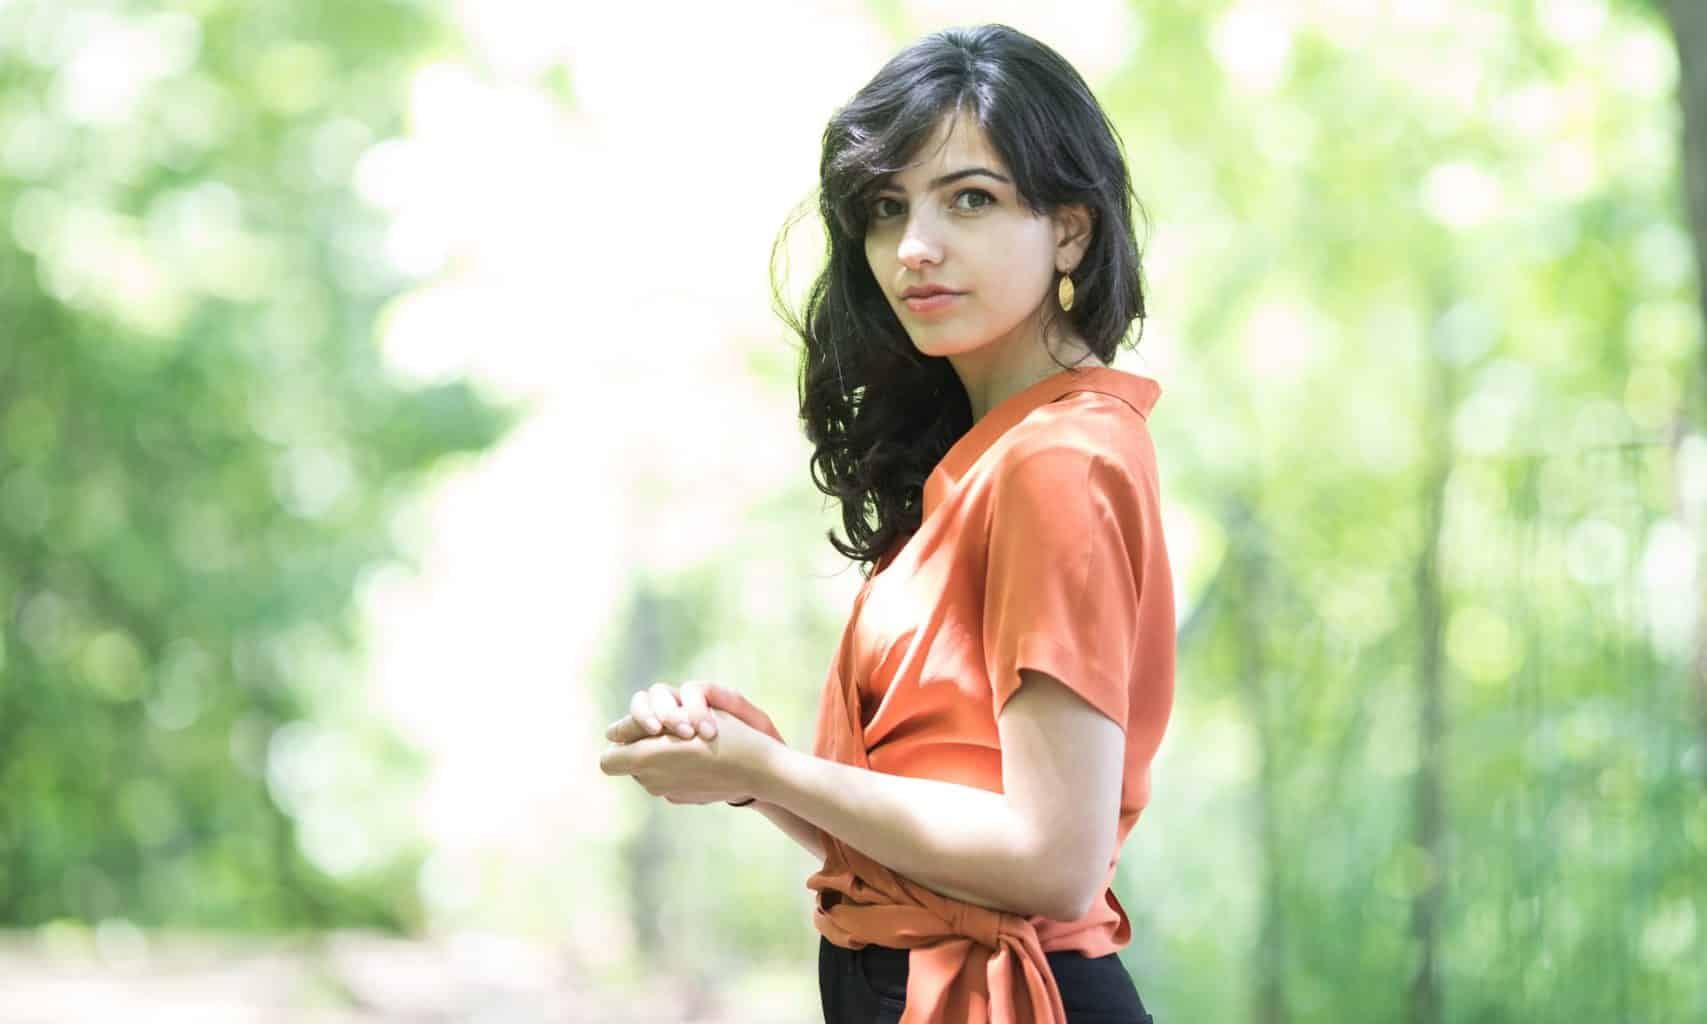 Author Fatima Farheen Mirza